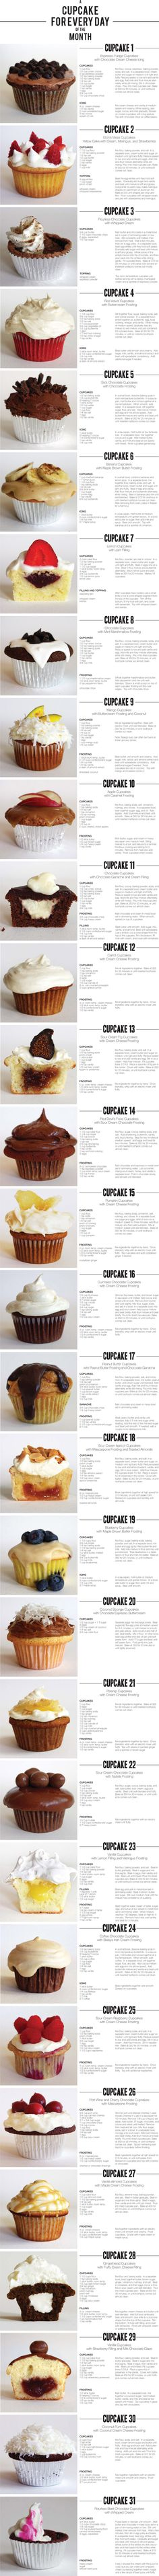 Cupcake for every day of the month.